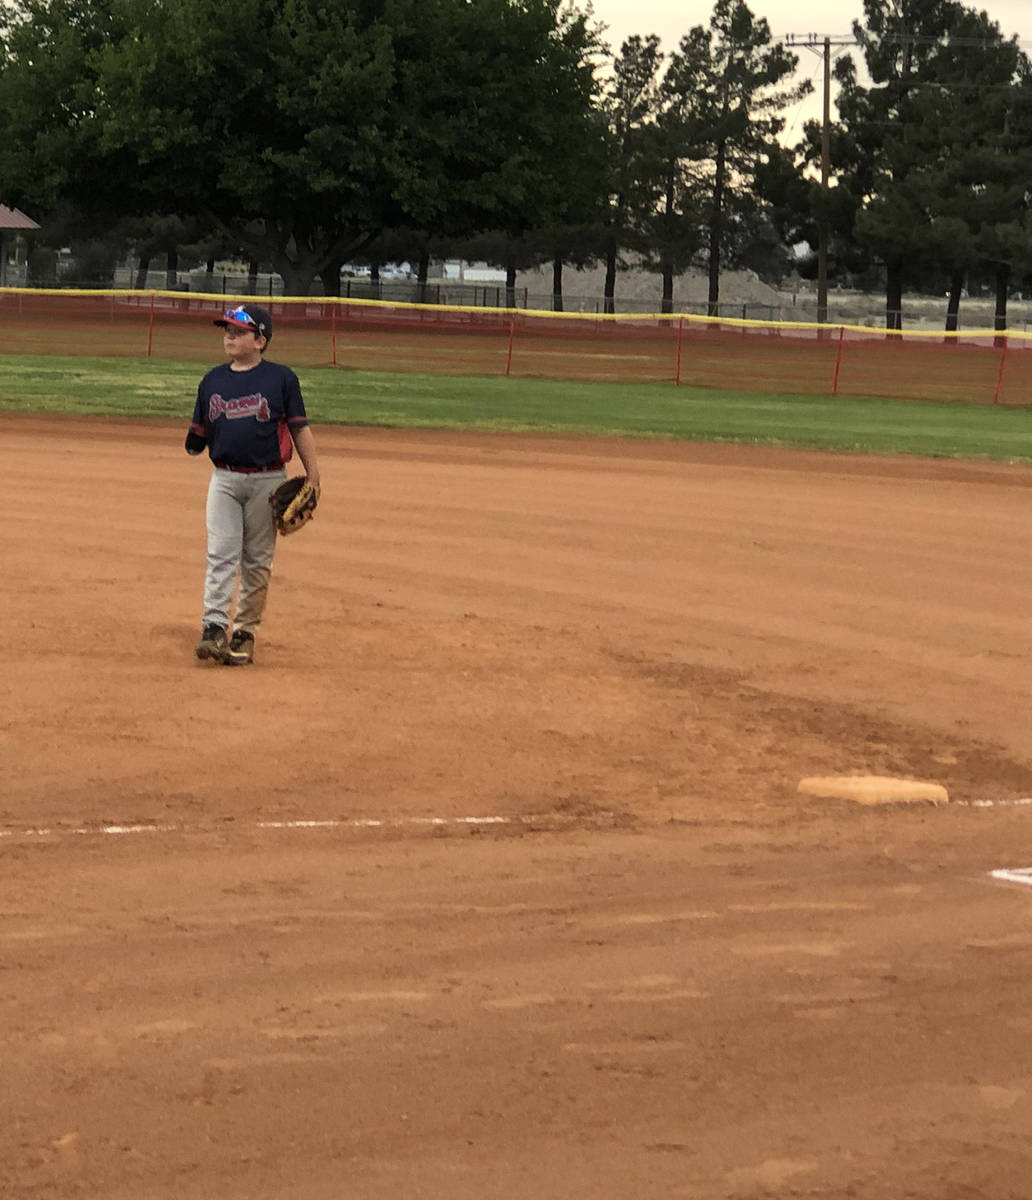 Tom Rysinski/Pahrump Valley Times Austin Abelar stands ready at first base for the Braves durin ...